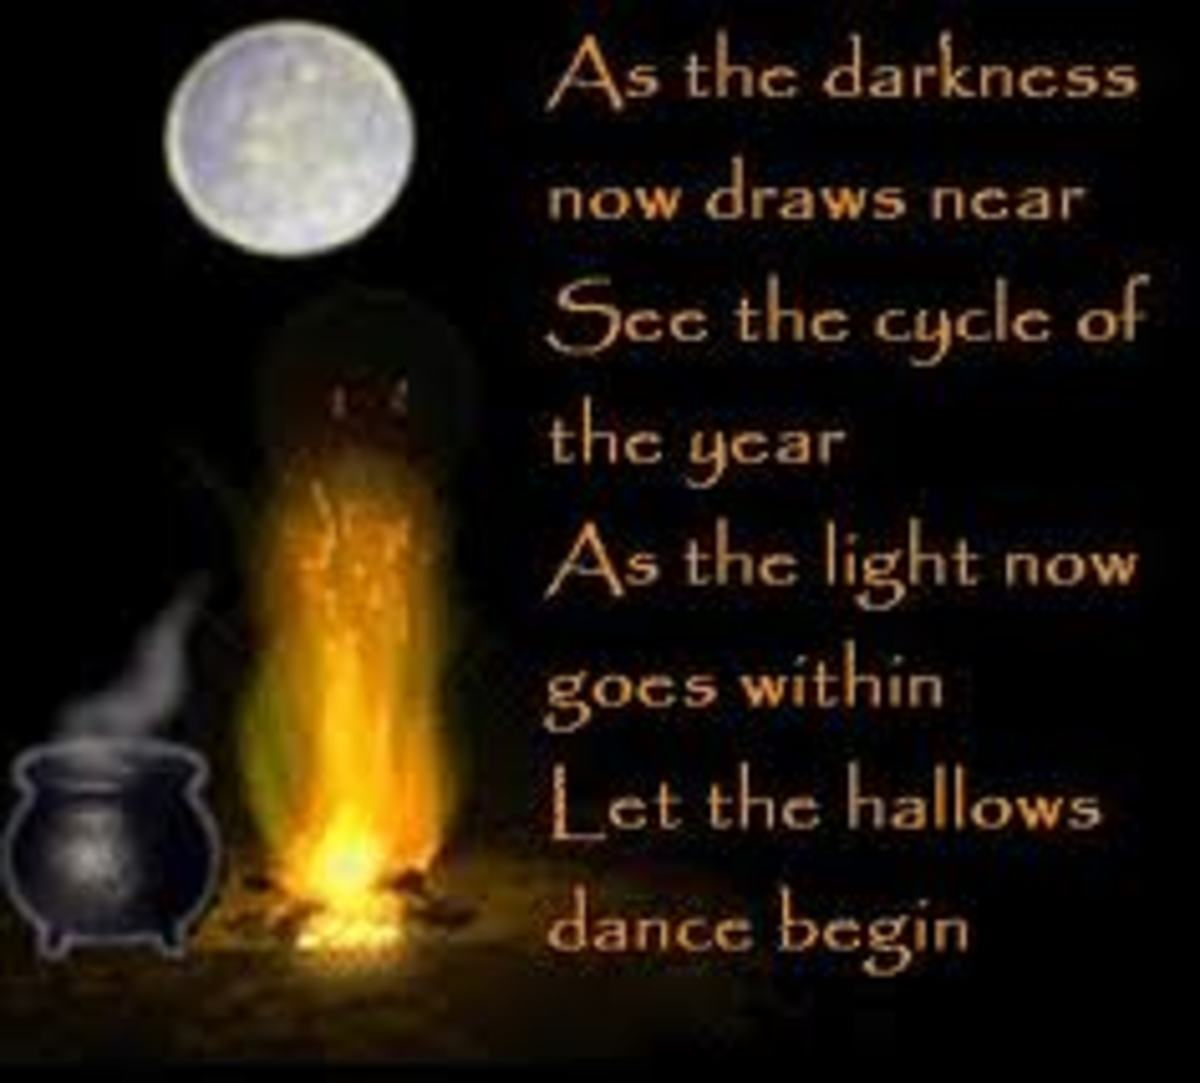 As the darkness now draws near See the cycle of the year. As the light now goes within, Let the hallows dance begin